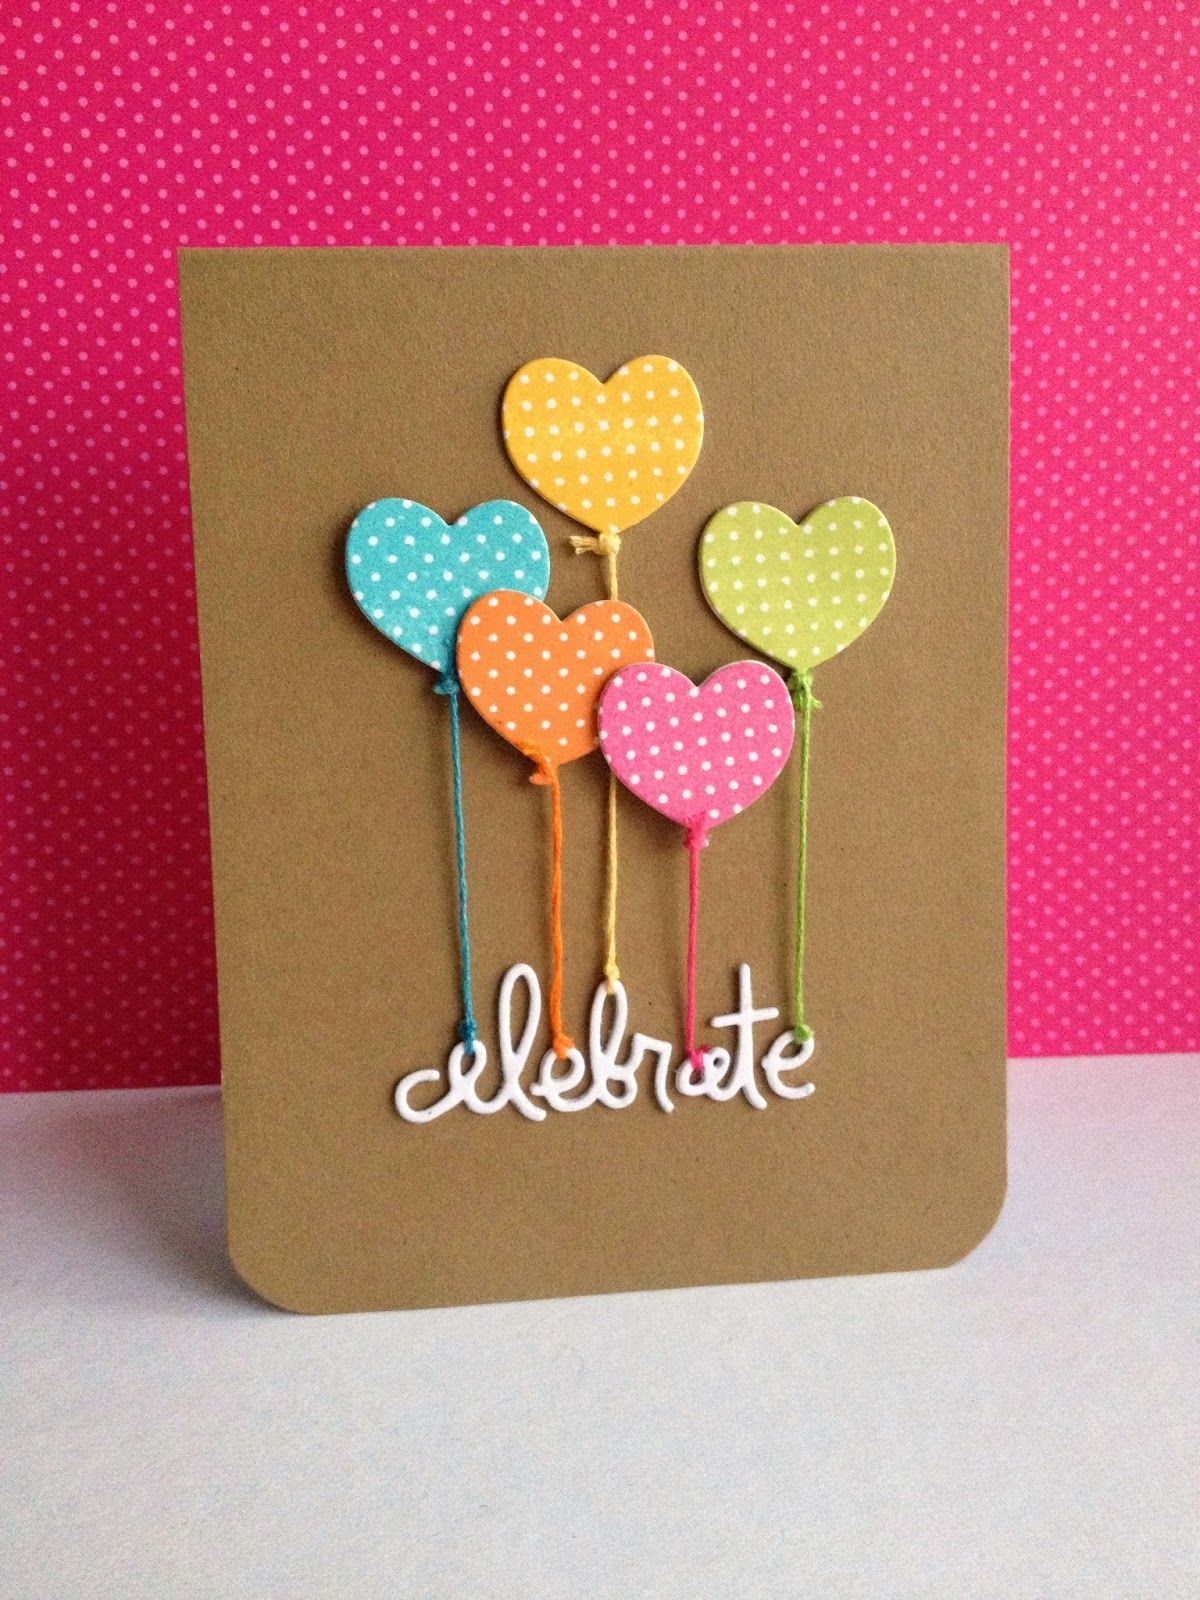 Celebrate j cards to make pinterest polka dot paper heart kraft card with adorable heart shaped balloons die cut from polka dot papers tied with threads of the same color kristyandbryce Choice Image